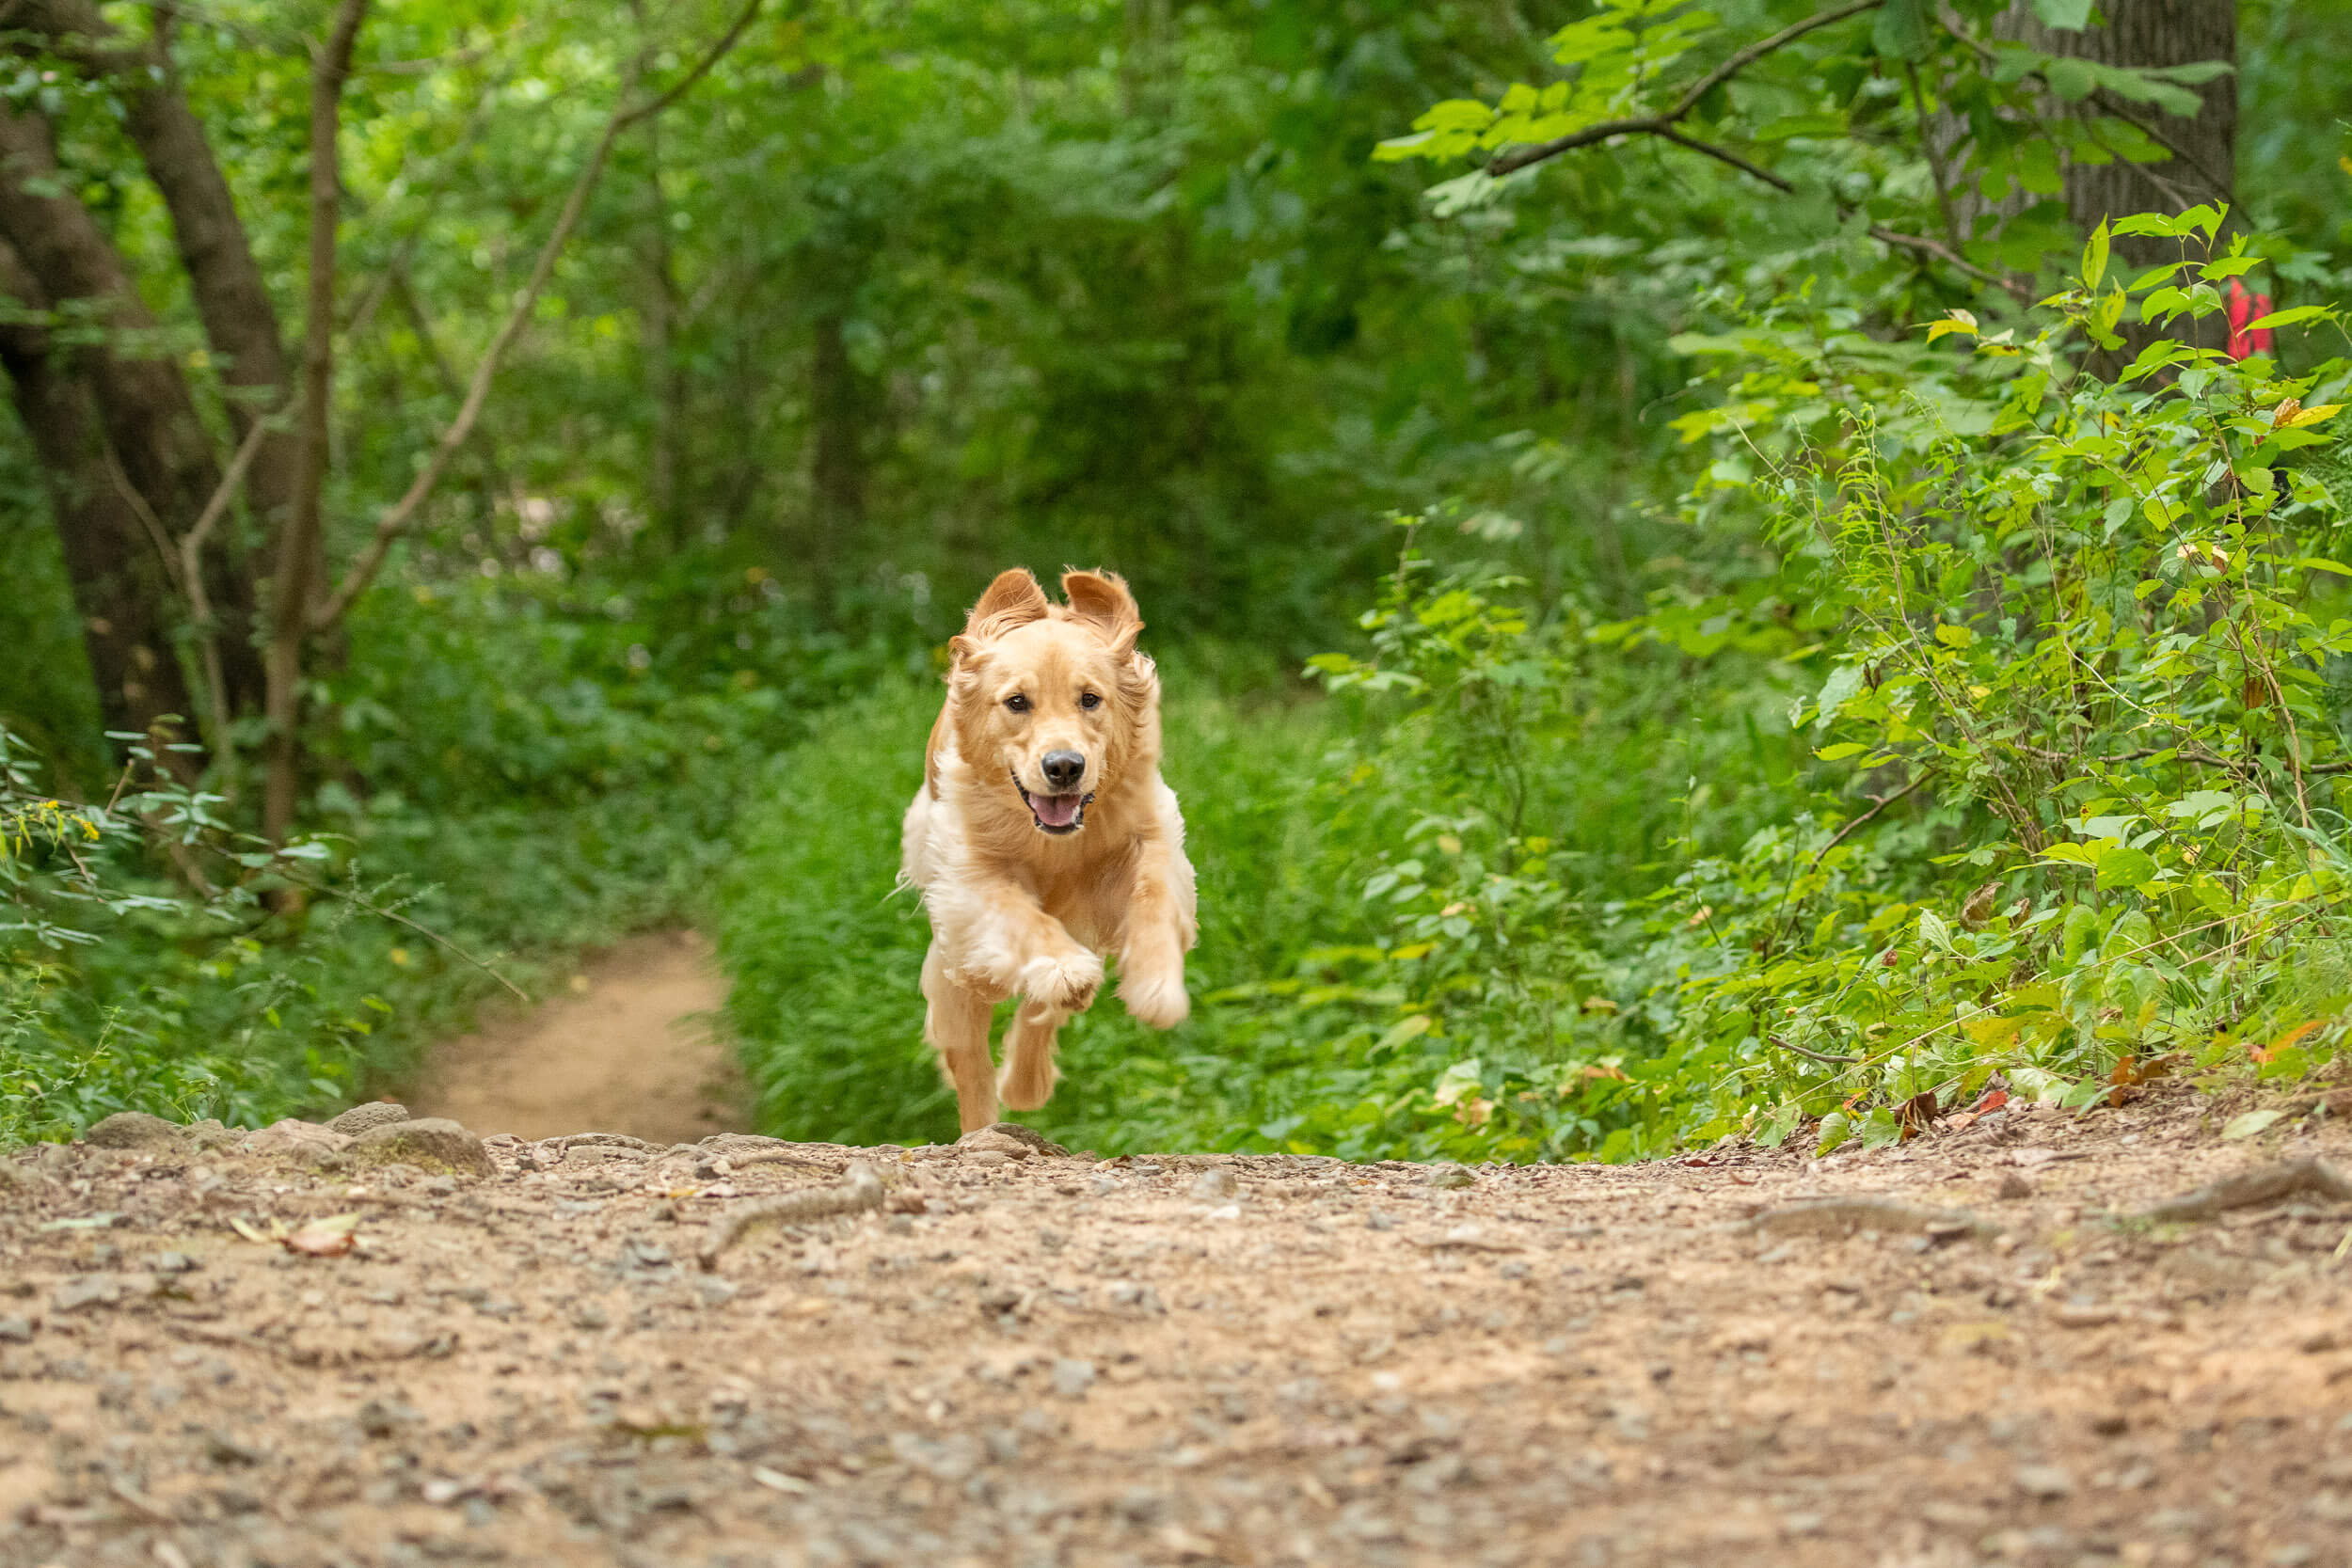 Golden retriever running down trail off-leash after taking puppy training classes.